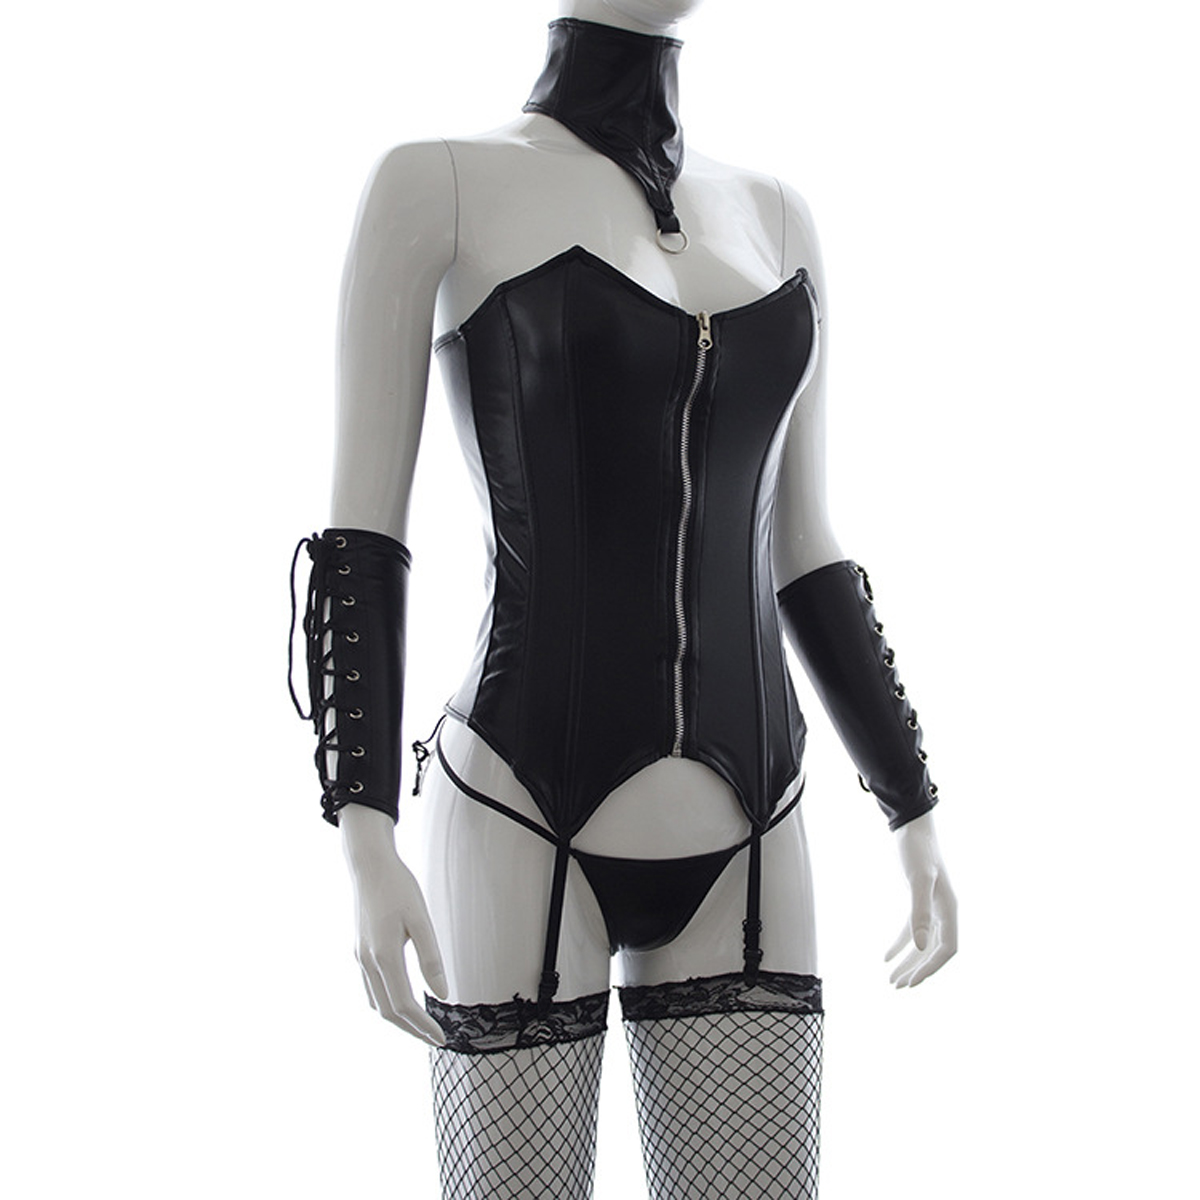 Chastity Belt Leather Basm Bondage Restraint Costume PVC Bodysuit Zipper Neck Cover Handcuffs Waistband T pants Set For Women in Adult Games from Beauty Health